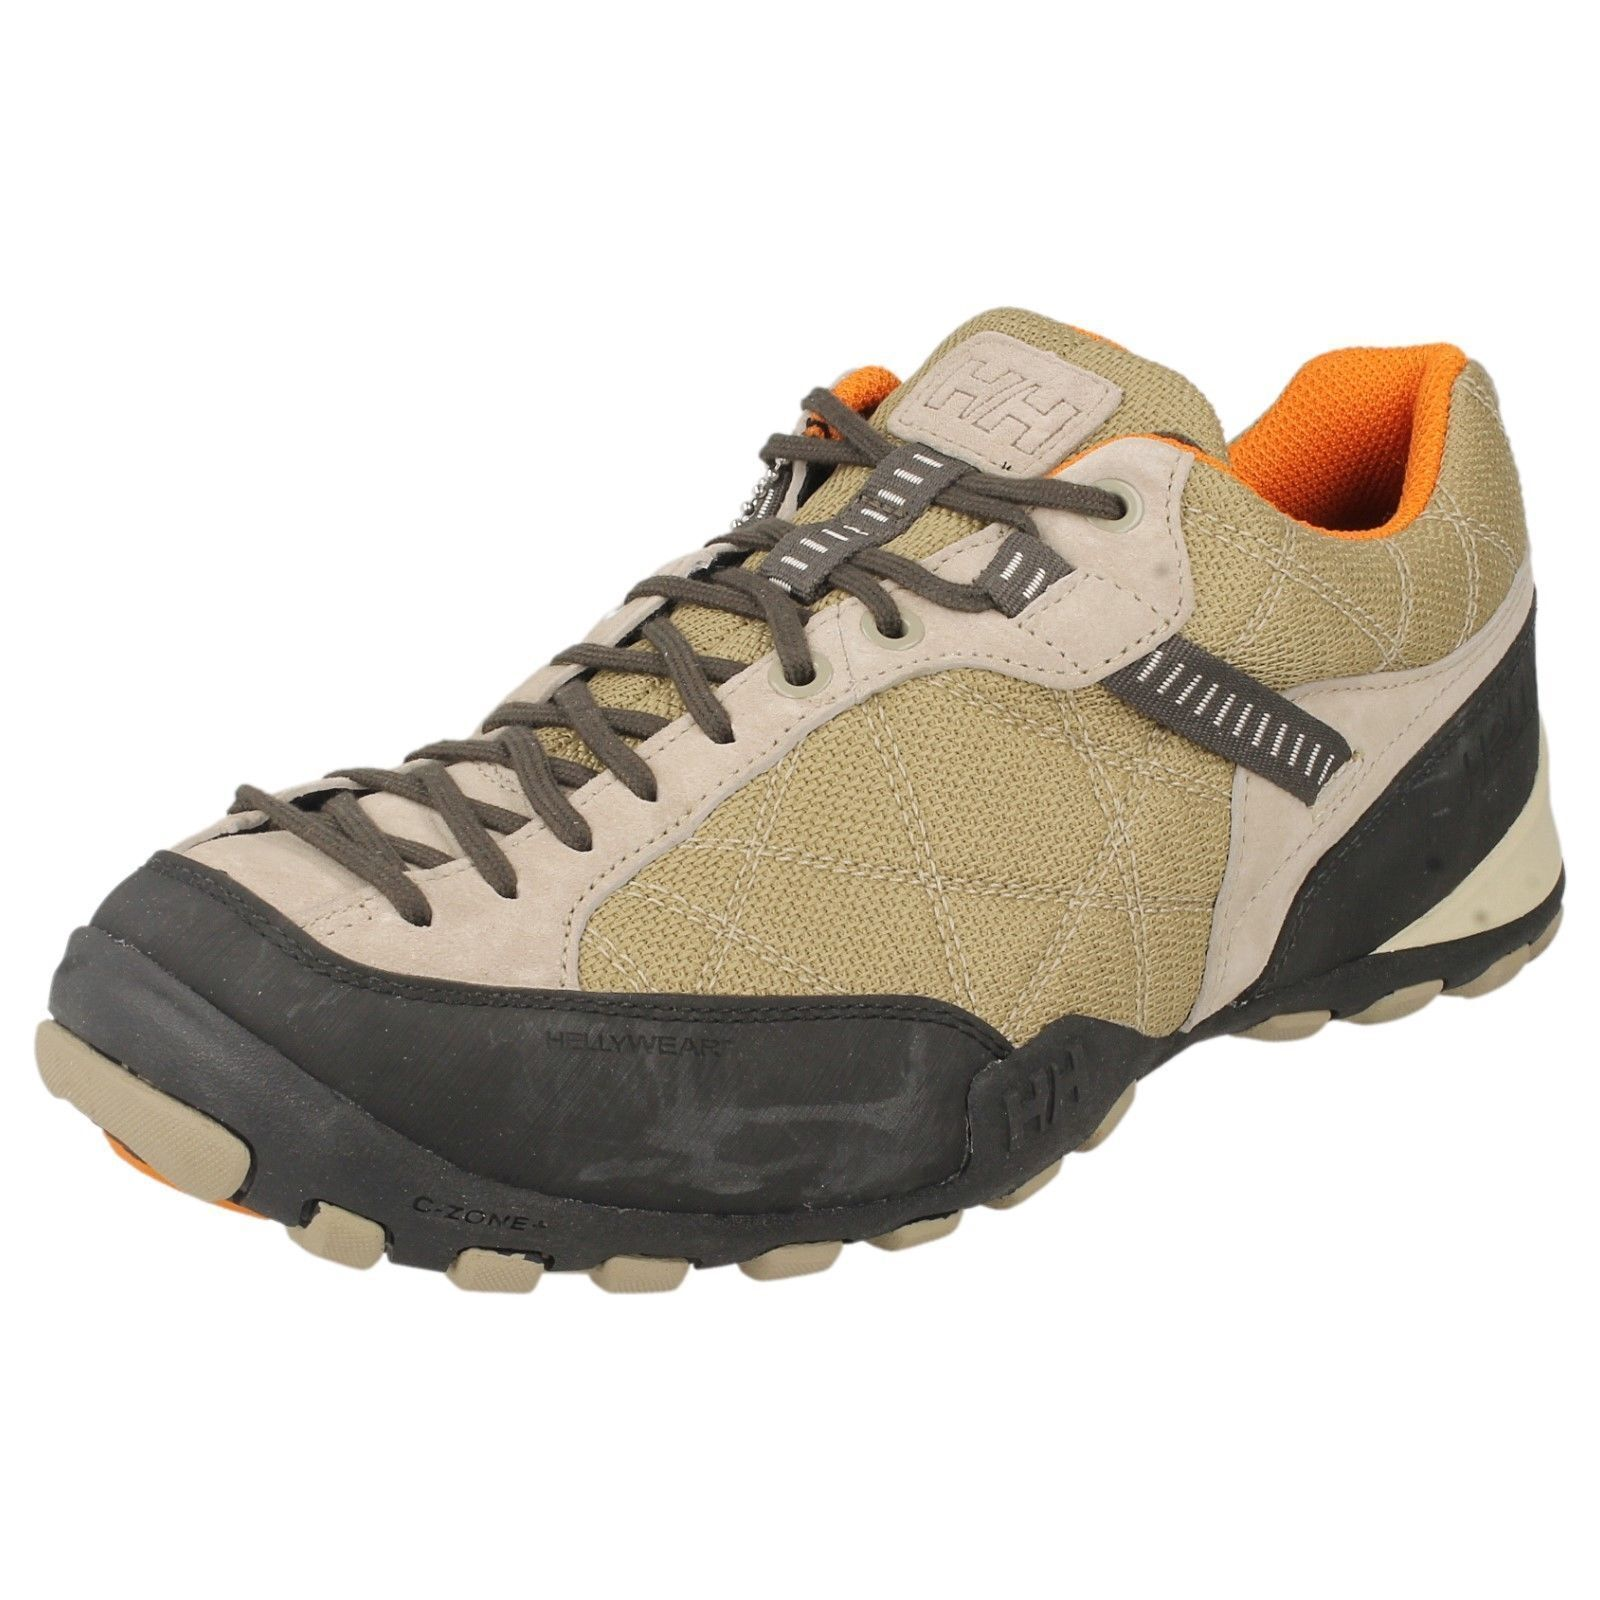 Ladies w the korktrekker 5 lowtaupe orange lace up trainer BYHelly Hansen